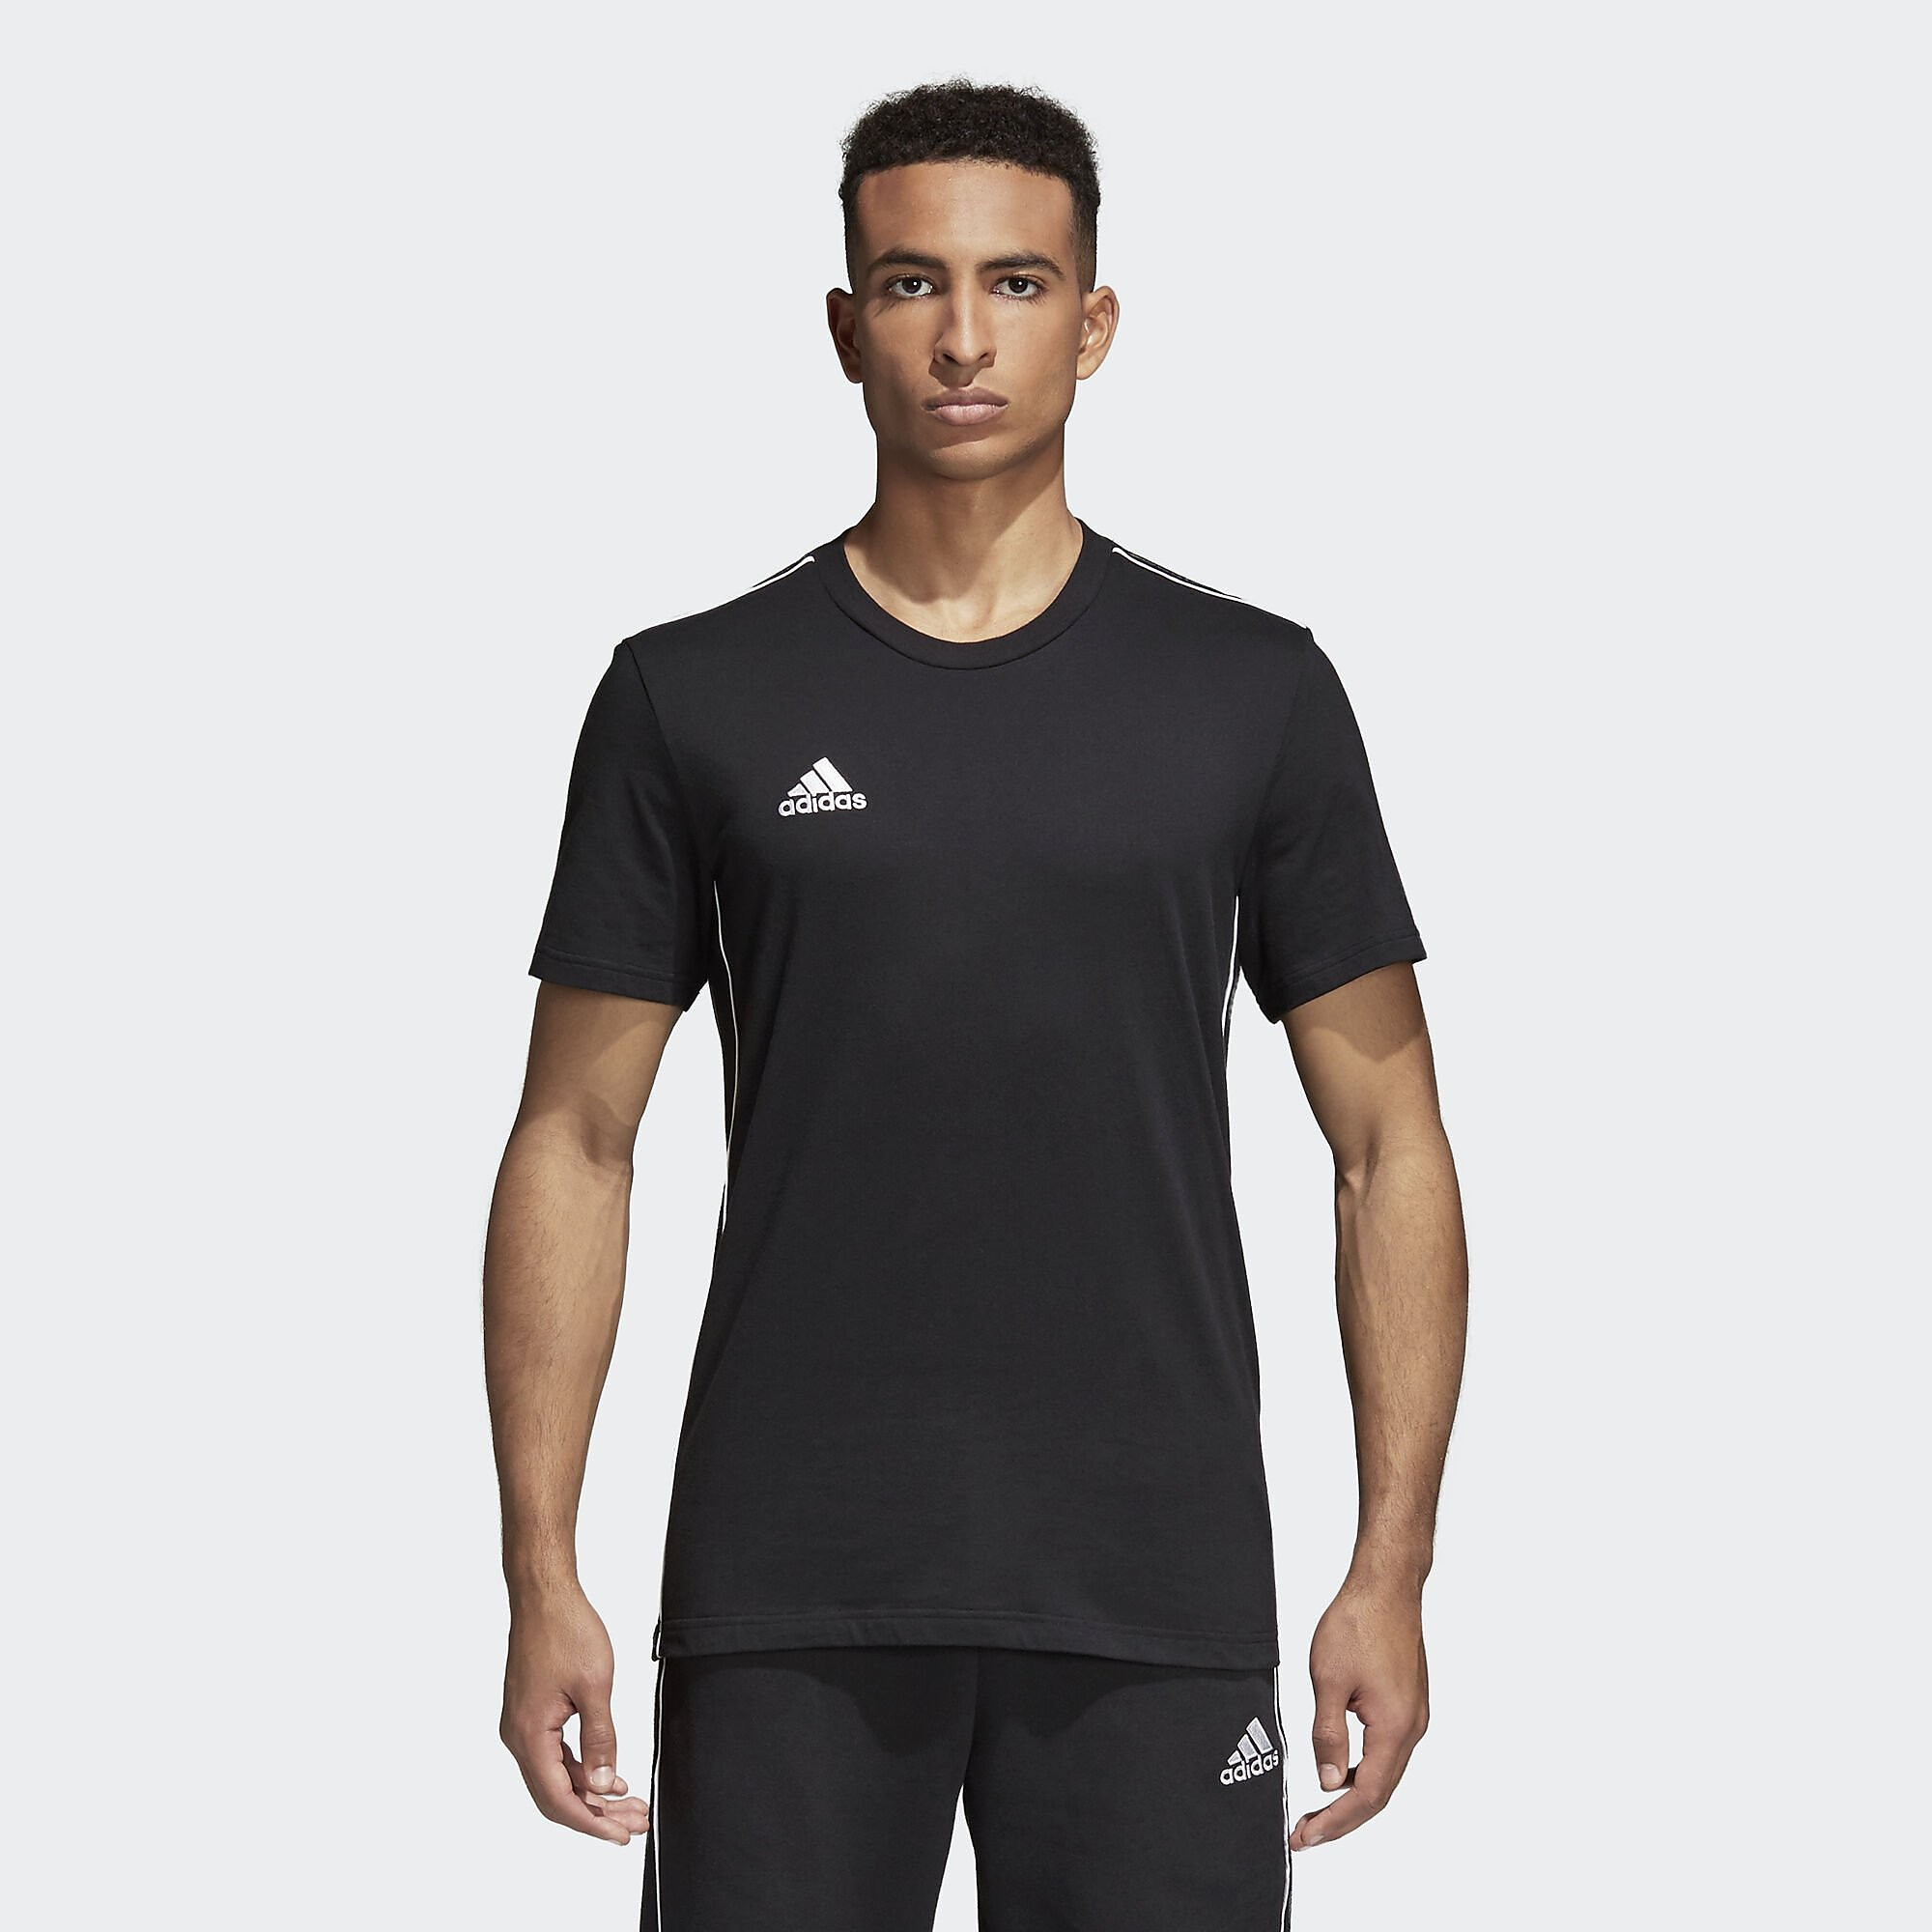 adidas Adidas core 18 t-shirt Heren